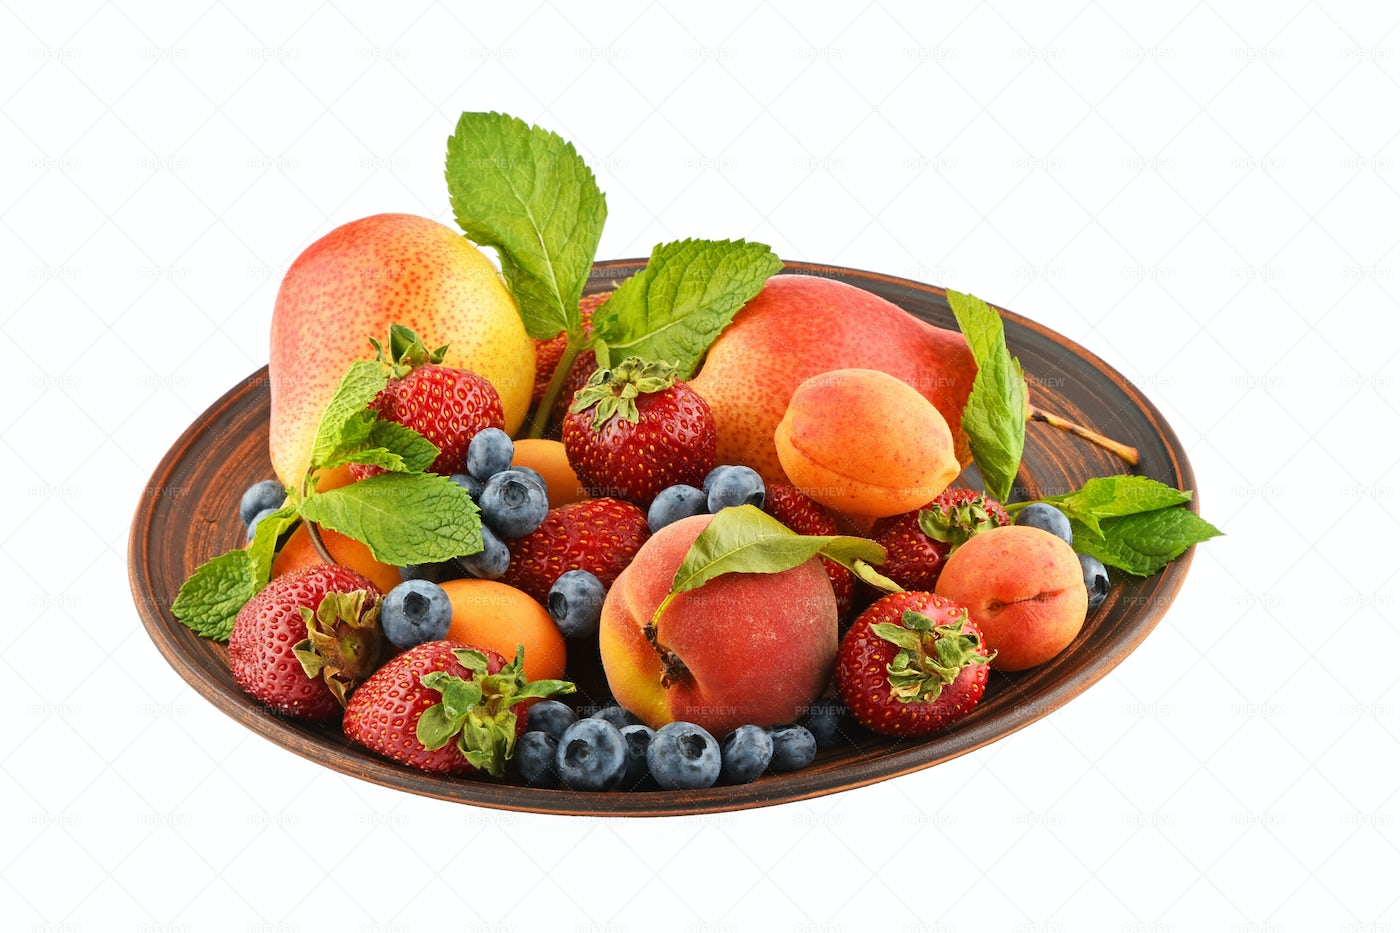 Fruits And Berries: Stock Photos